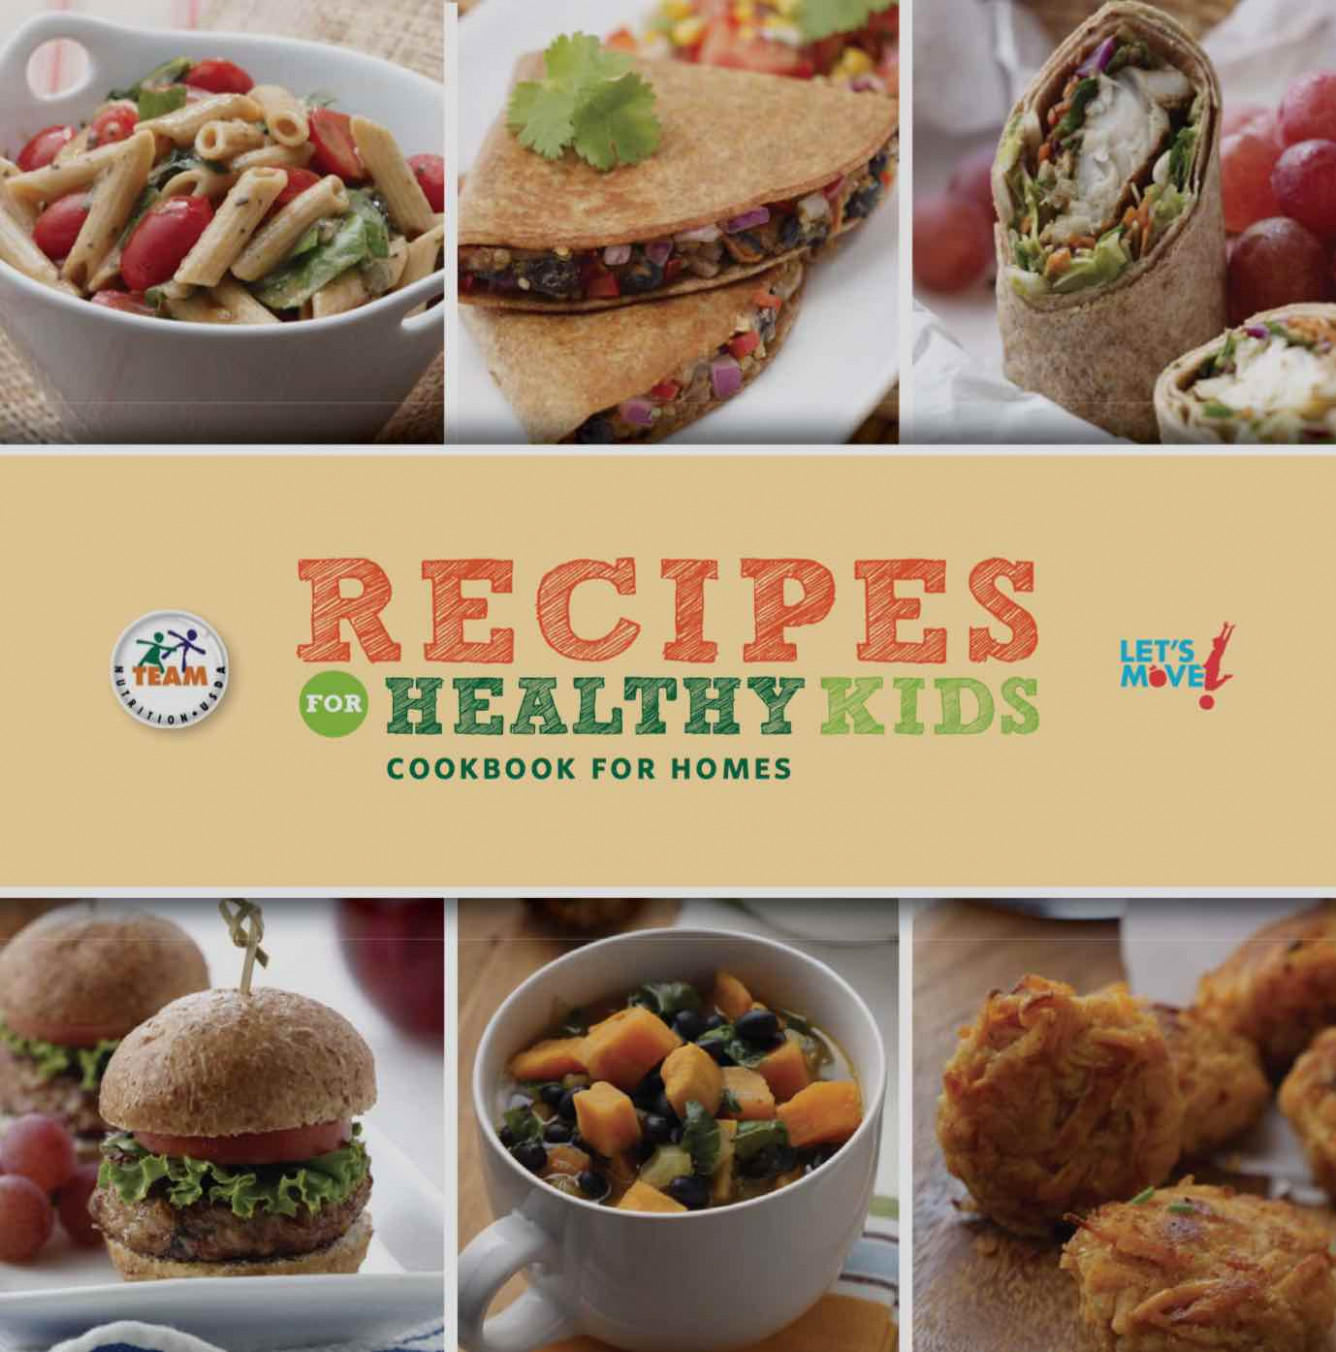 Recipes for Healthy Kids Cookbook - made by kids for kids ..